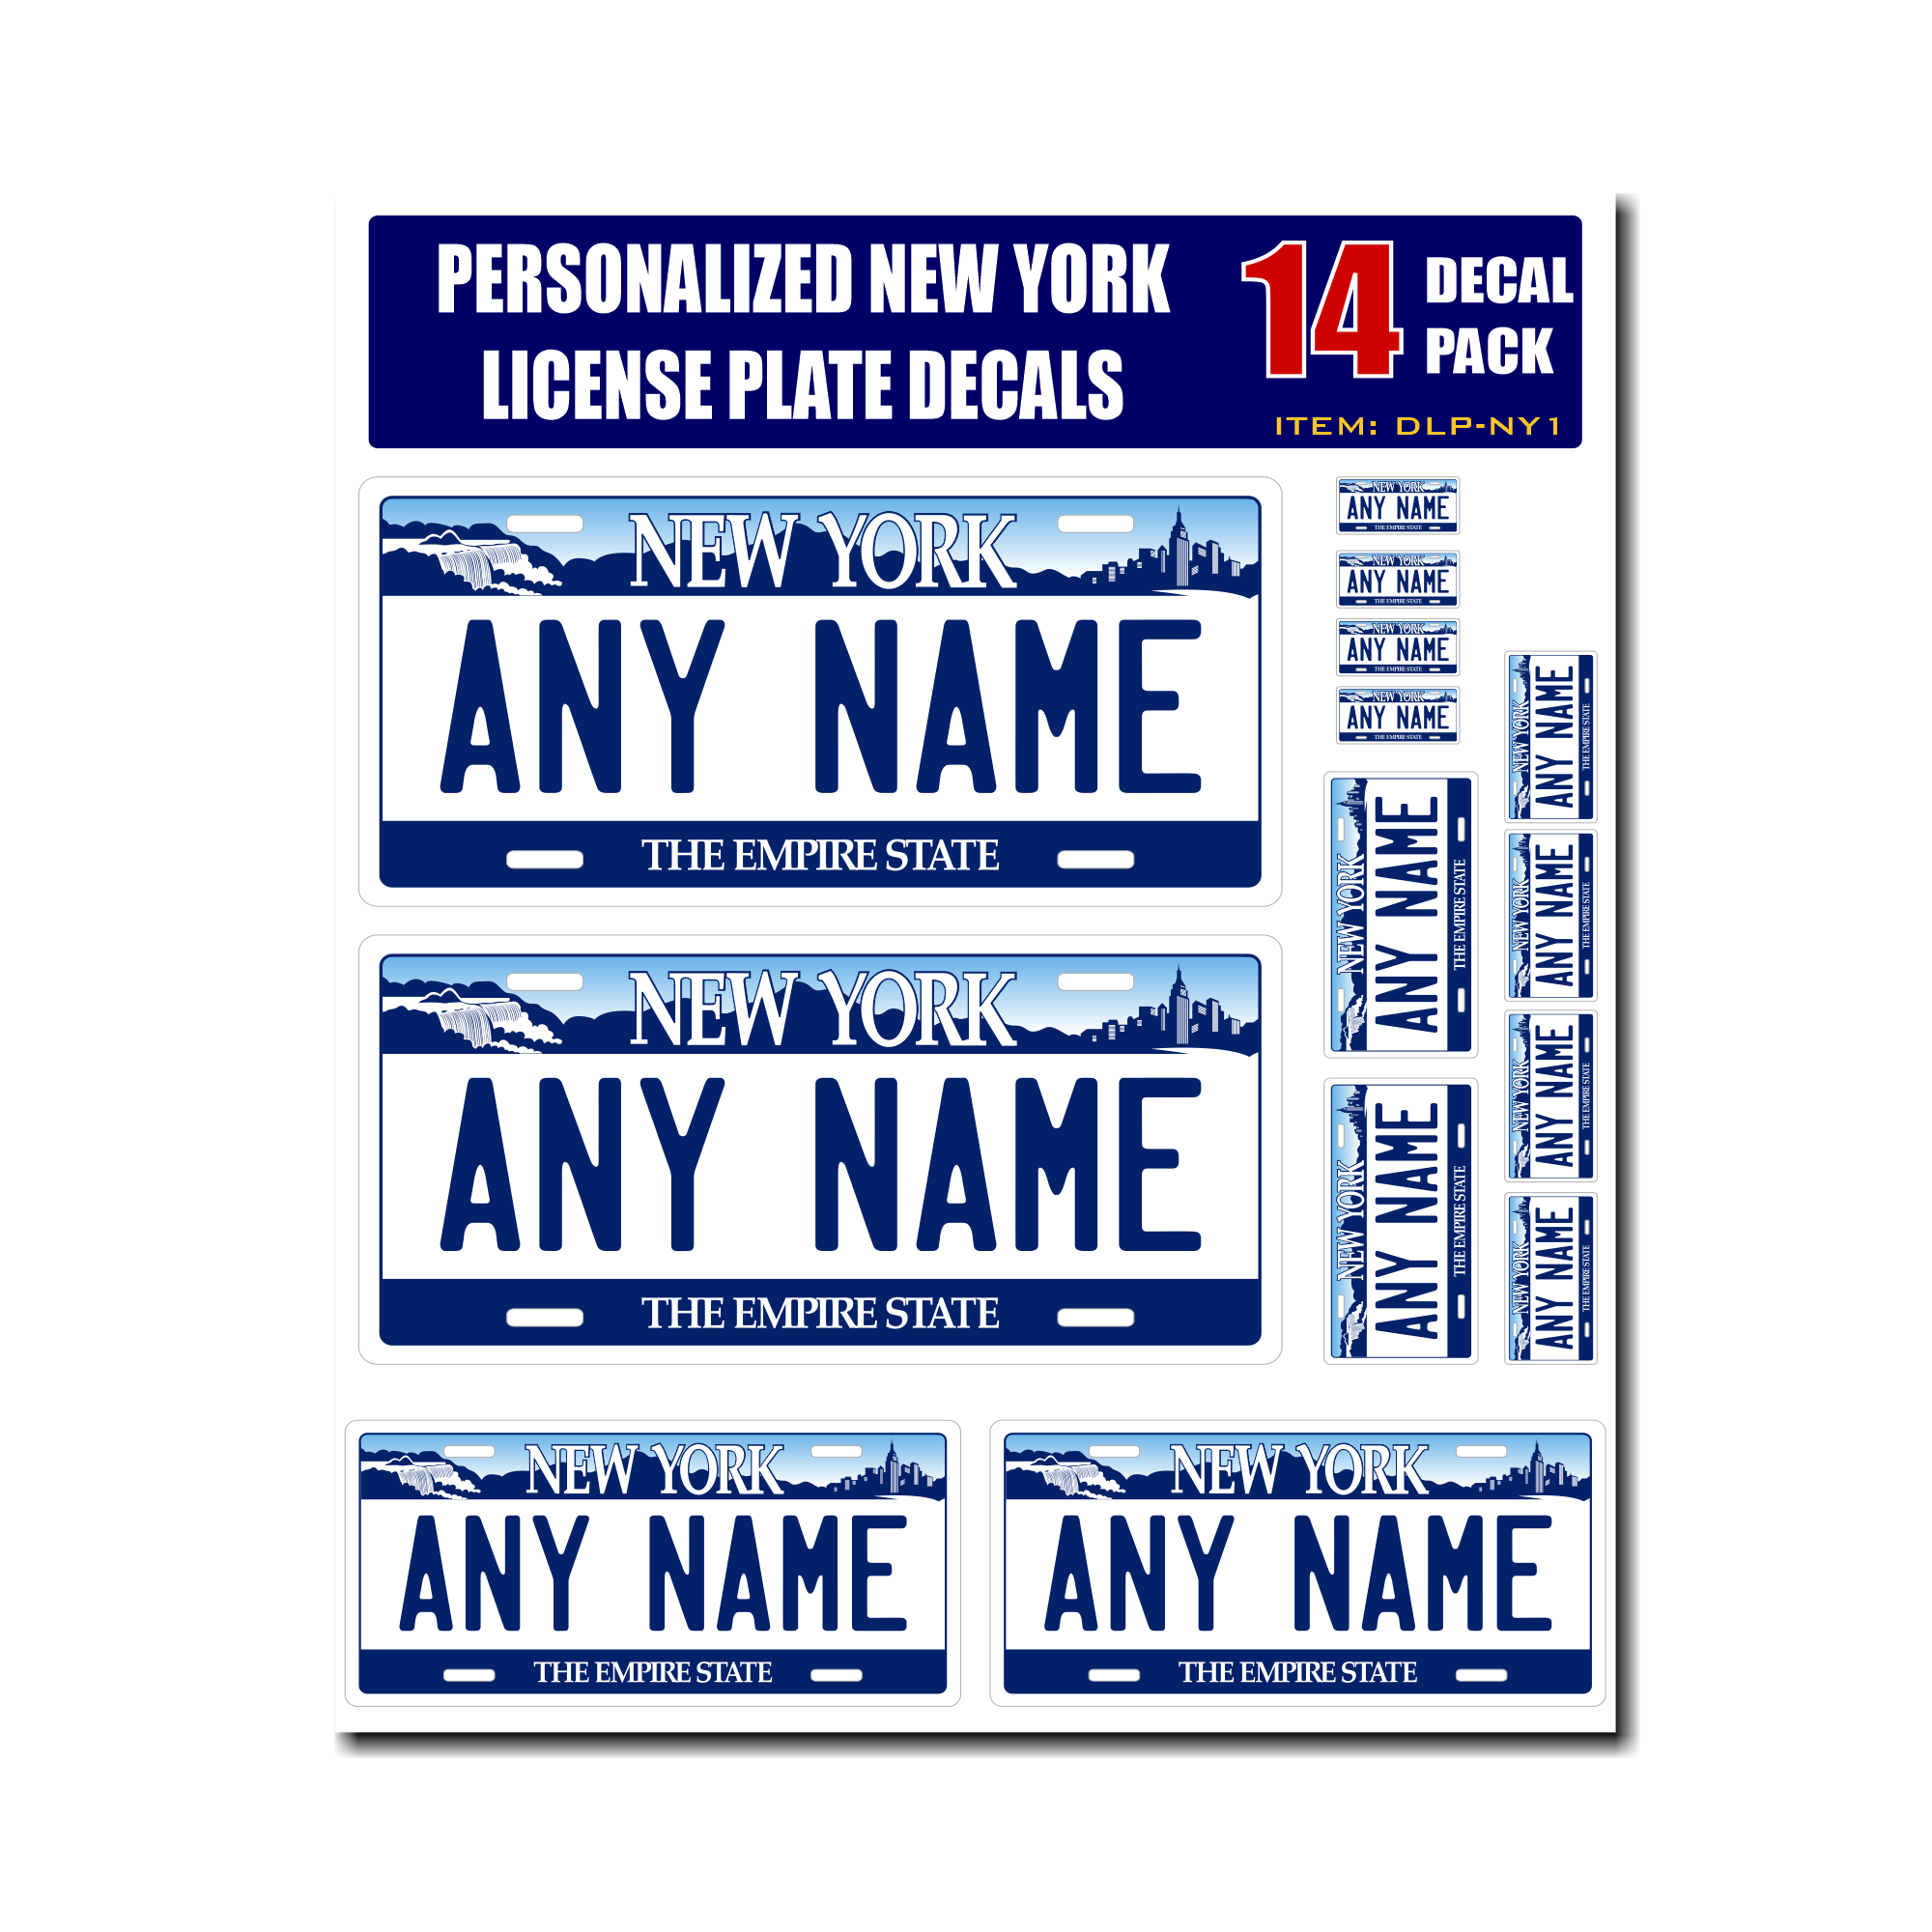 Home decal stickers personalized new york license plate decals stickers version 1